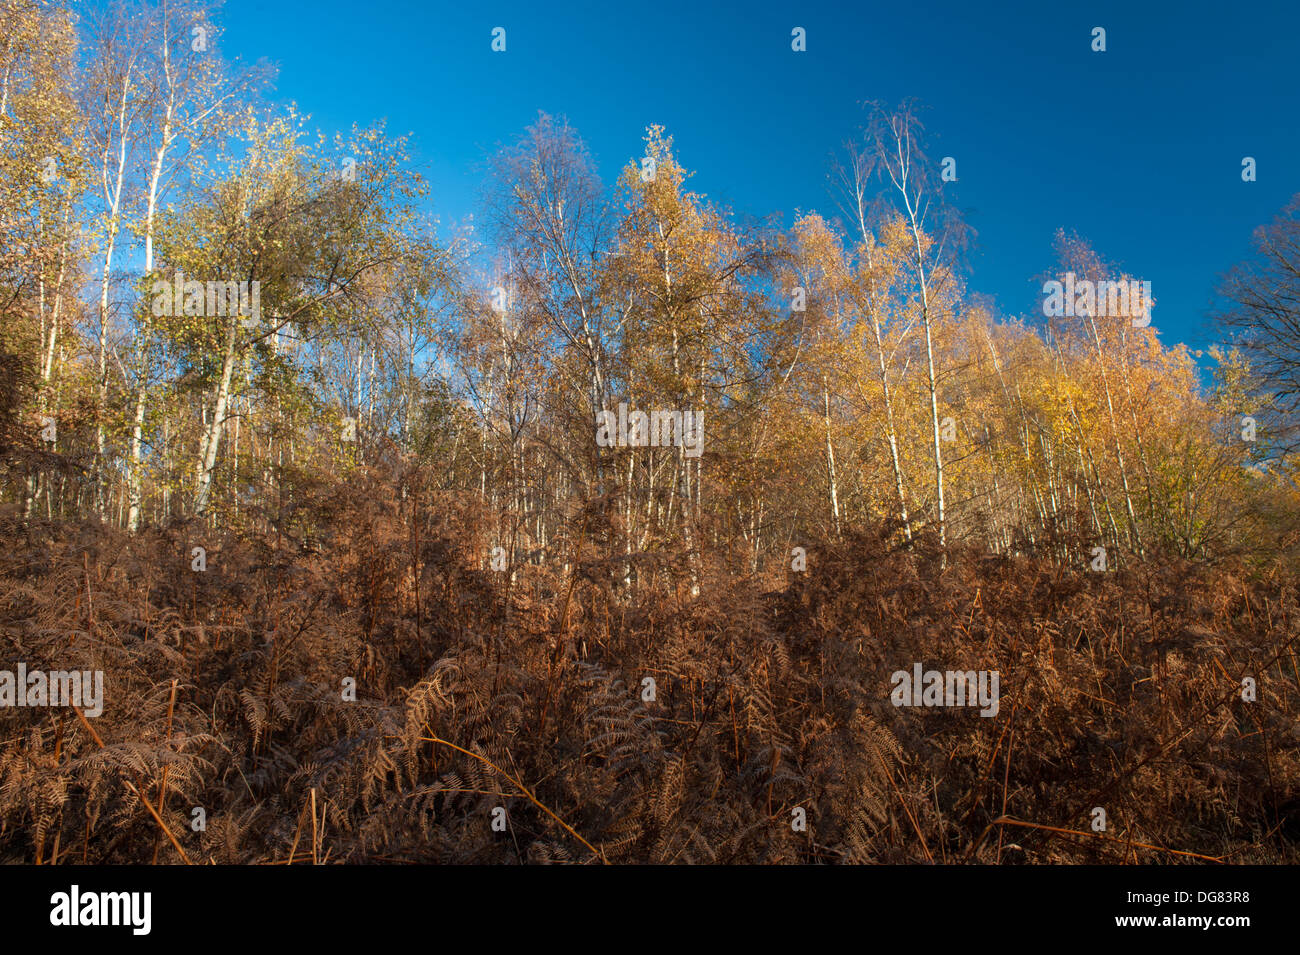 The Edge Bedford >> Brown Bracken And Birch Woodland In Autumn At The Edge Of